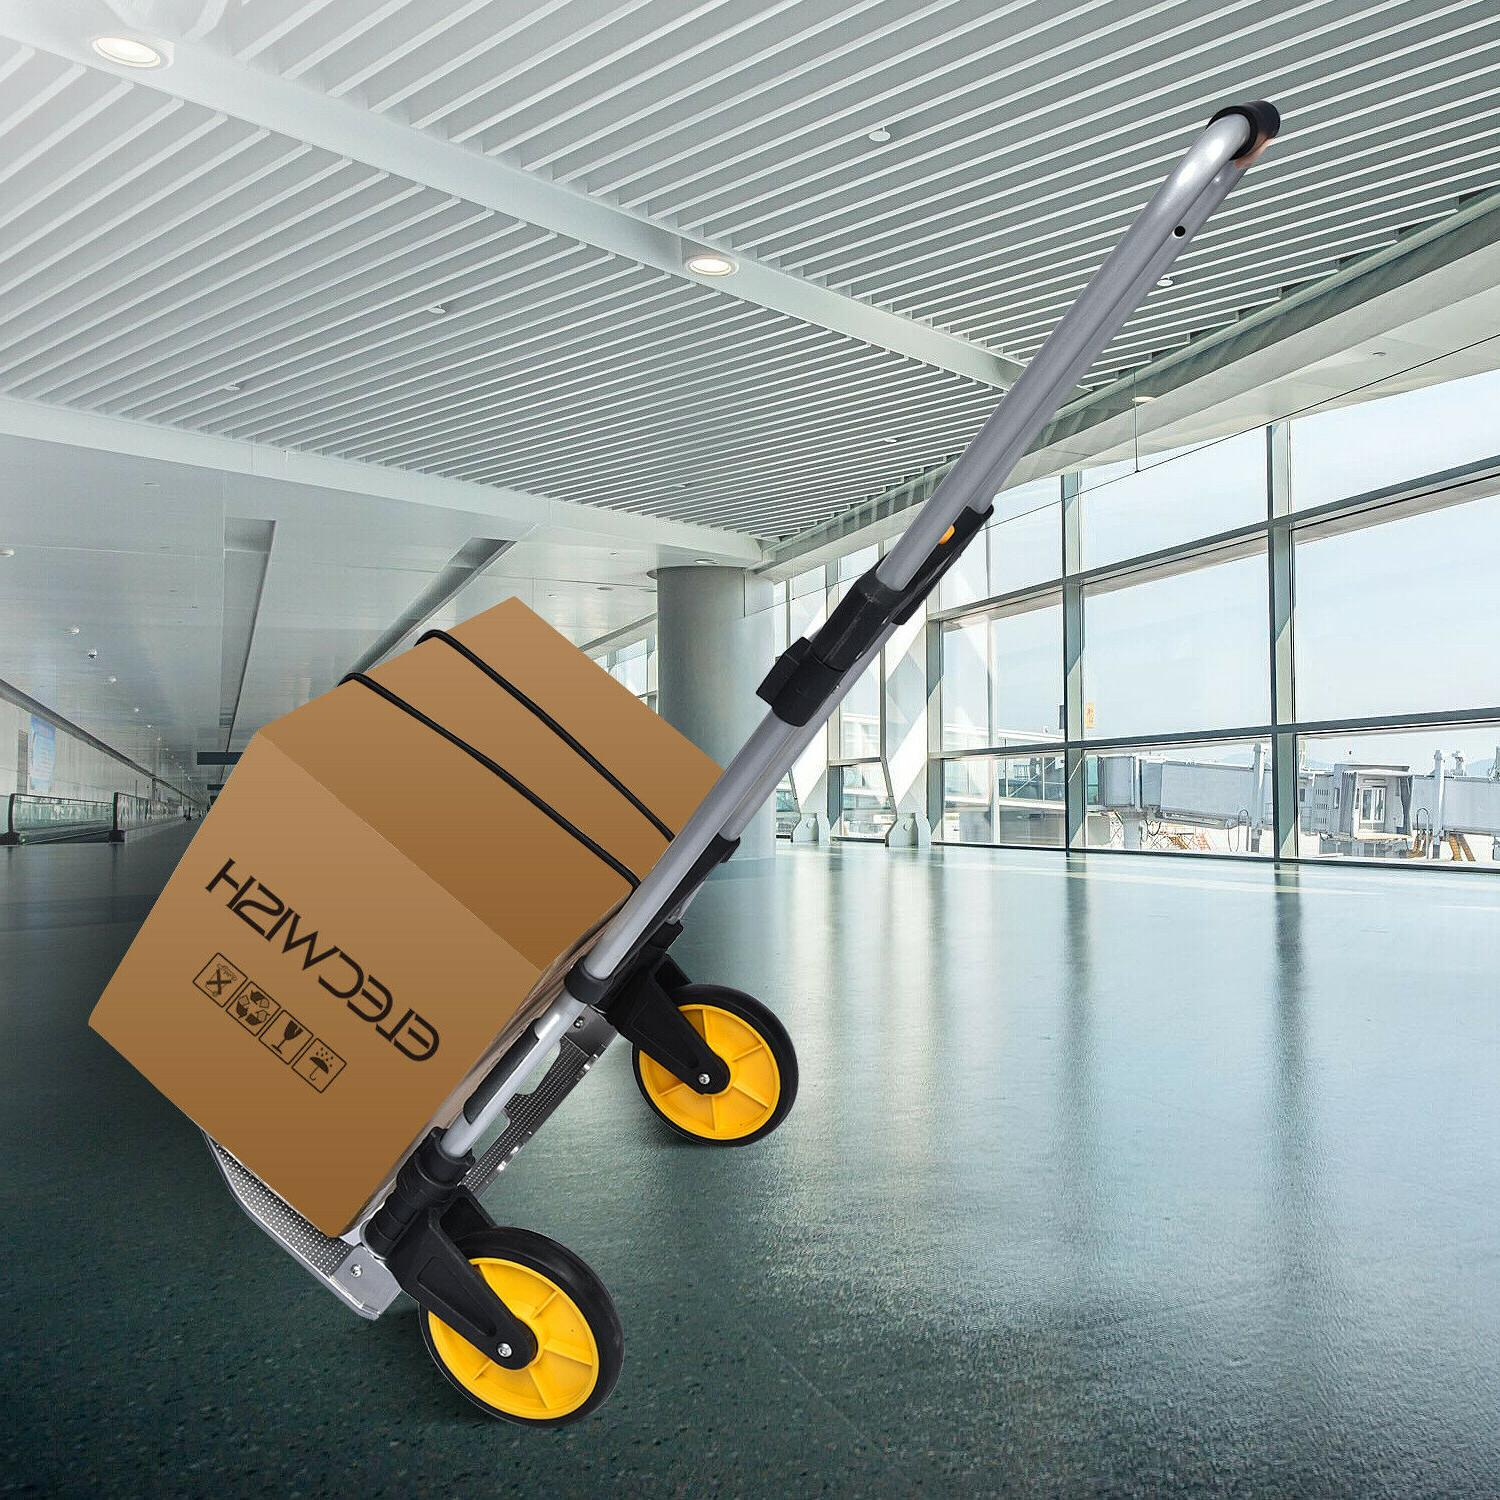 264 Portable Hand Truck Moving Luggage Duty